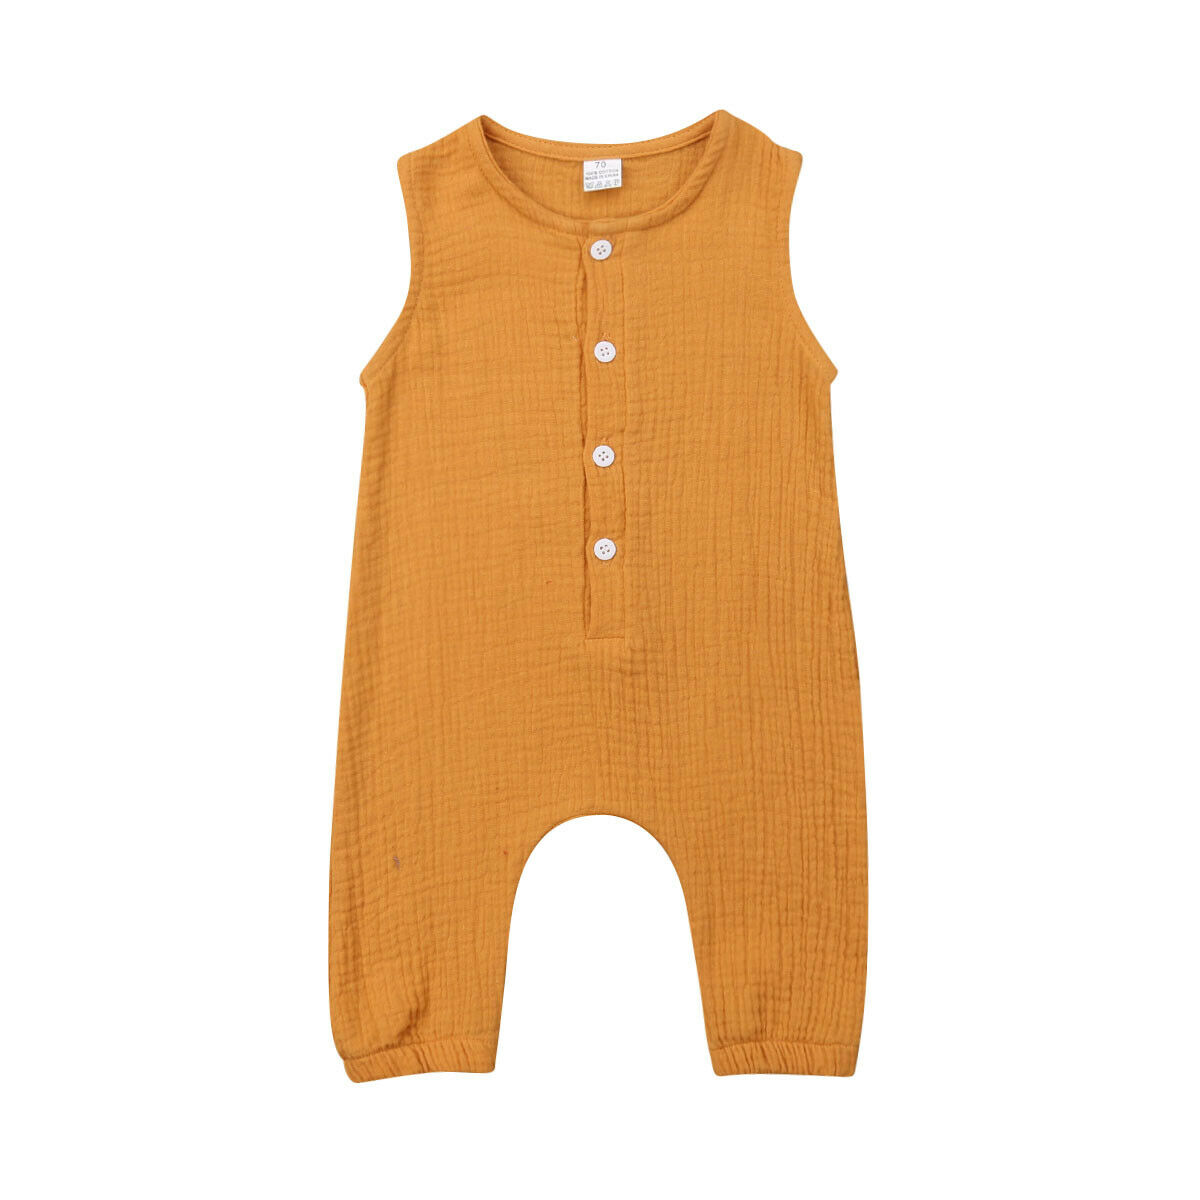 2019 Newest Style Newborn Infant Toddler Baby Girl Boy Spring Summer Adorable Romper Jumpsuit Outfits Clothes 0-18months Fragrant Aroma